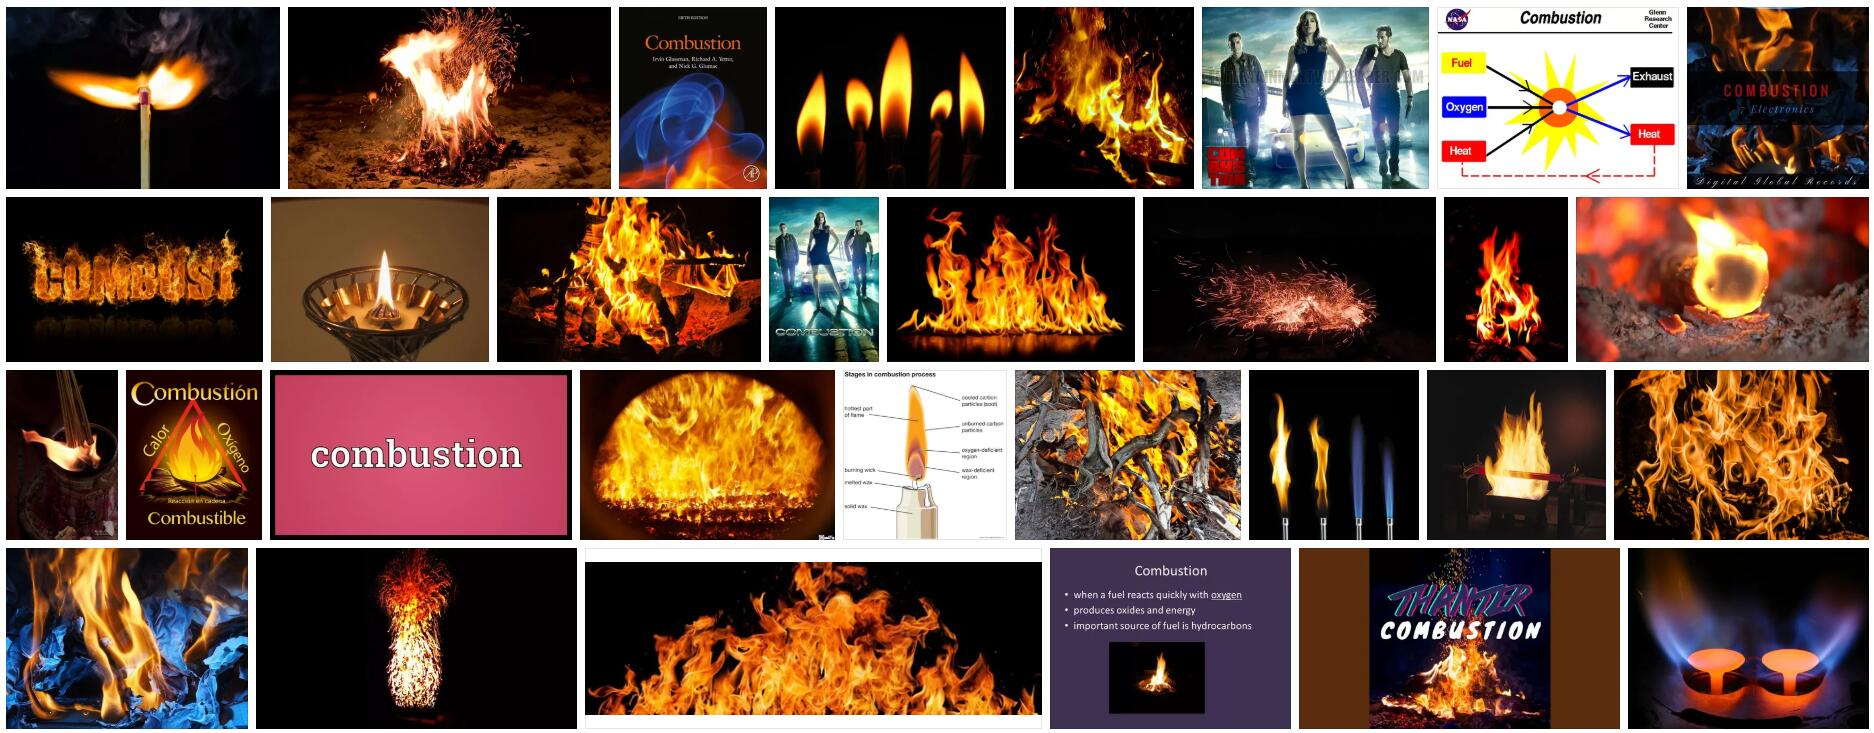 What is Combustion